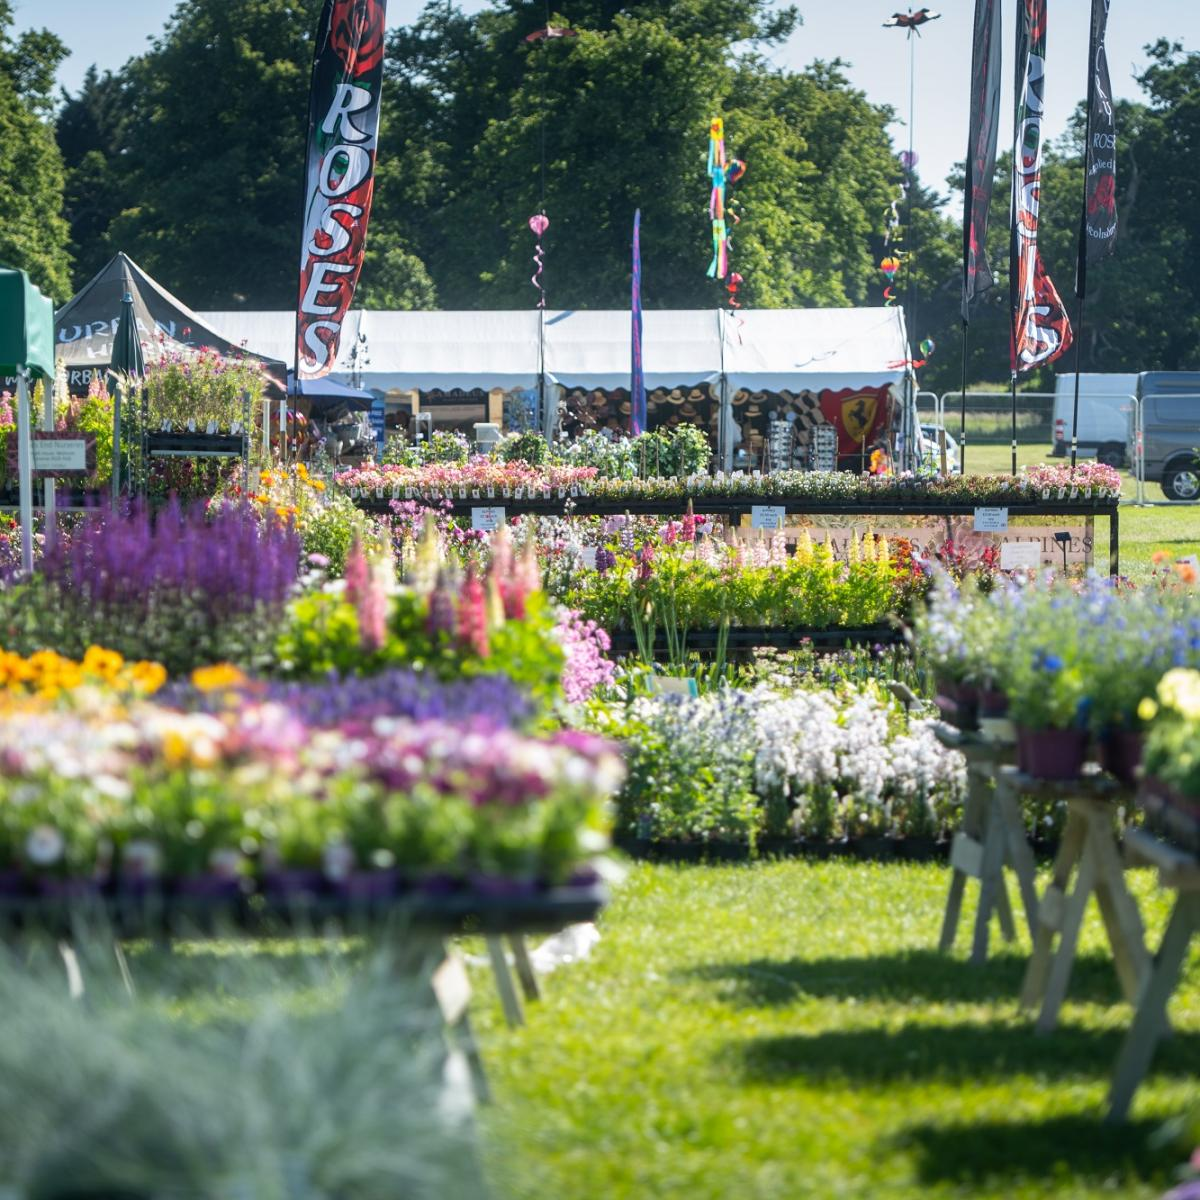 Blenheim Palace Flower Show 2021 - Gallery Image 01